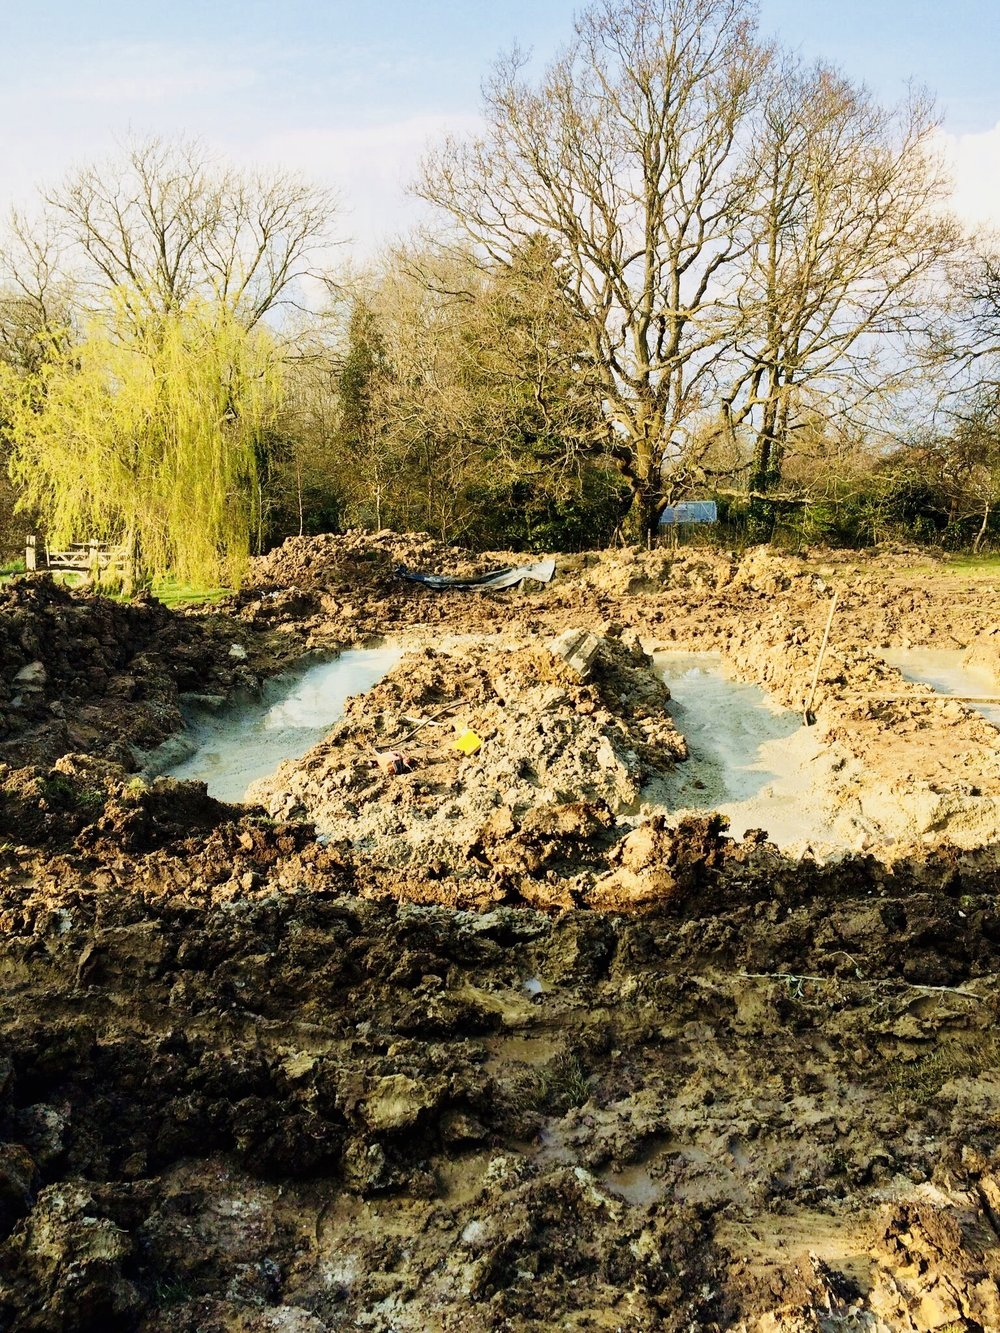 The result of the digging at the correct depth for the foundations of an The result of the digging at the correct depth for  an Eco home in West Sussex